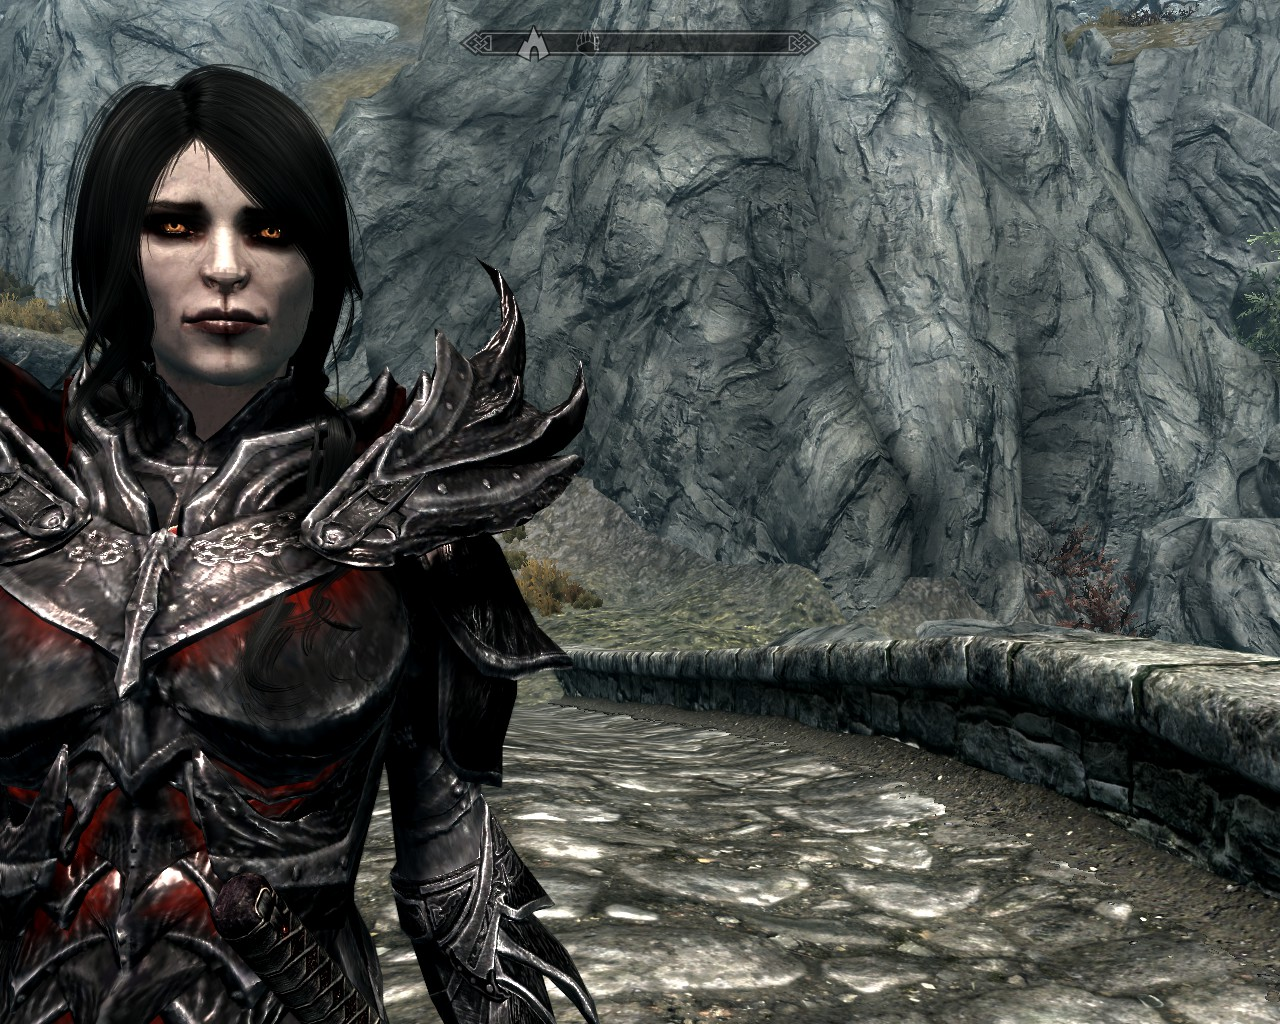 Images of Skyrim Dawnguard Or Vampire - #rock-cafe